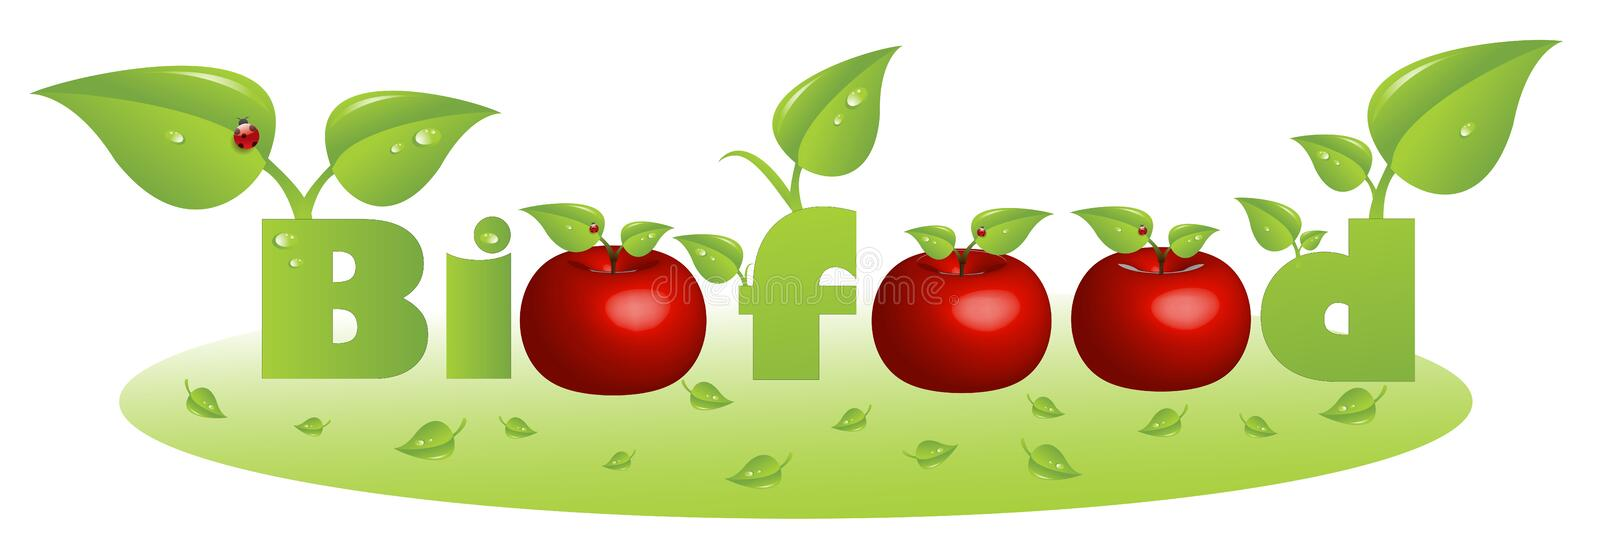 Bio food text caption with red apples stock illustration